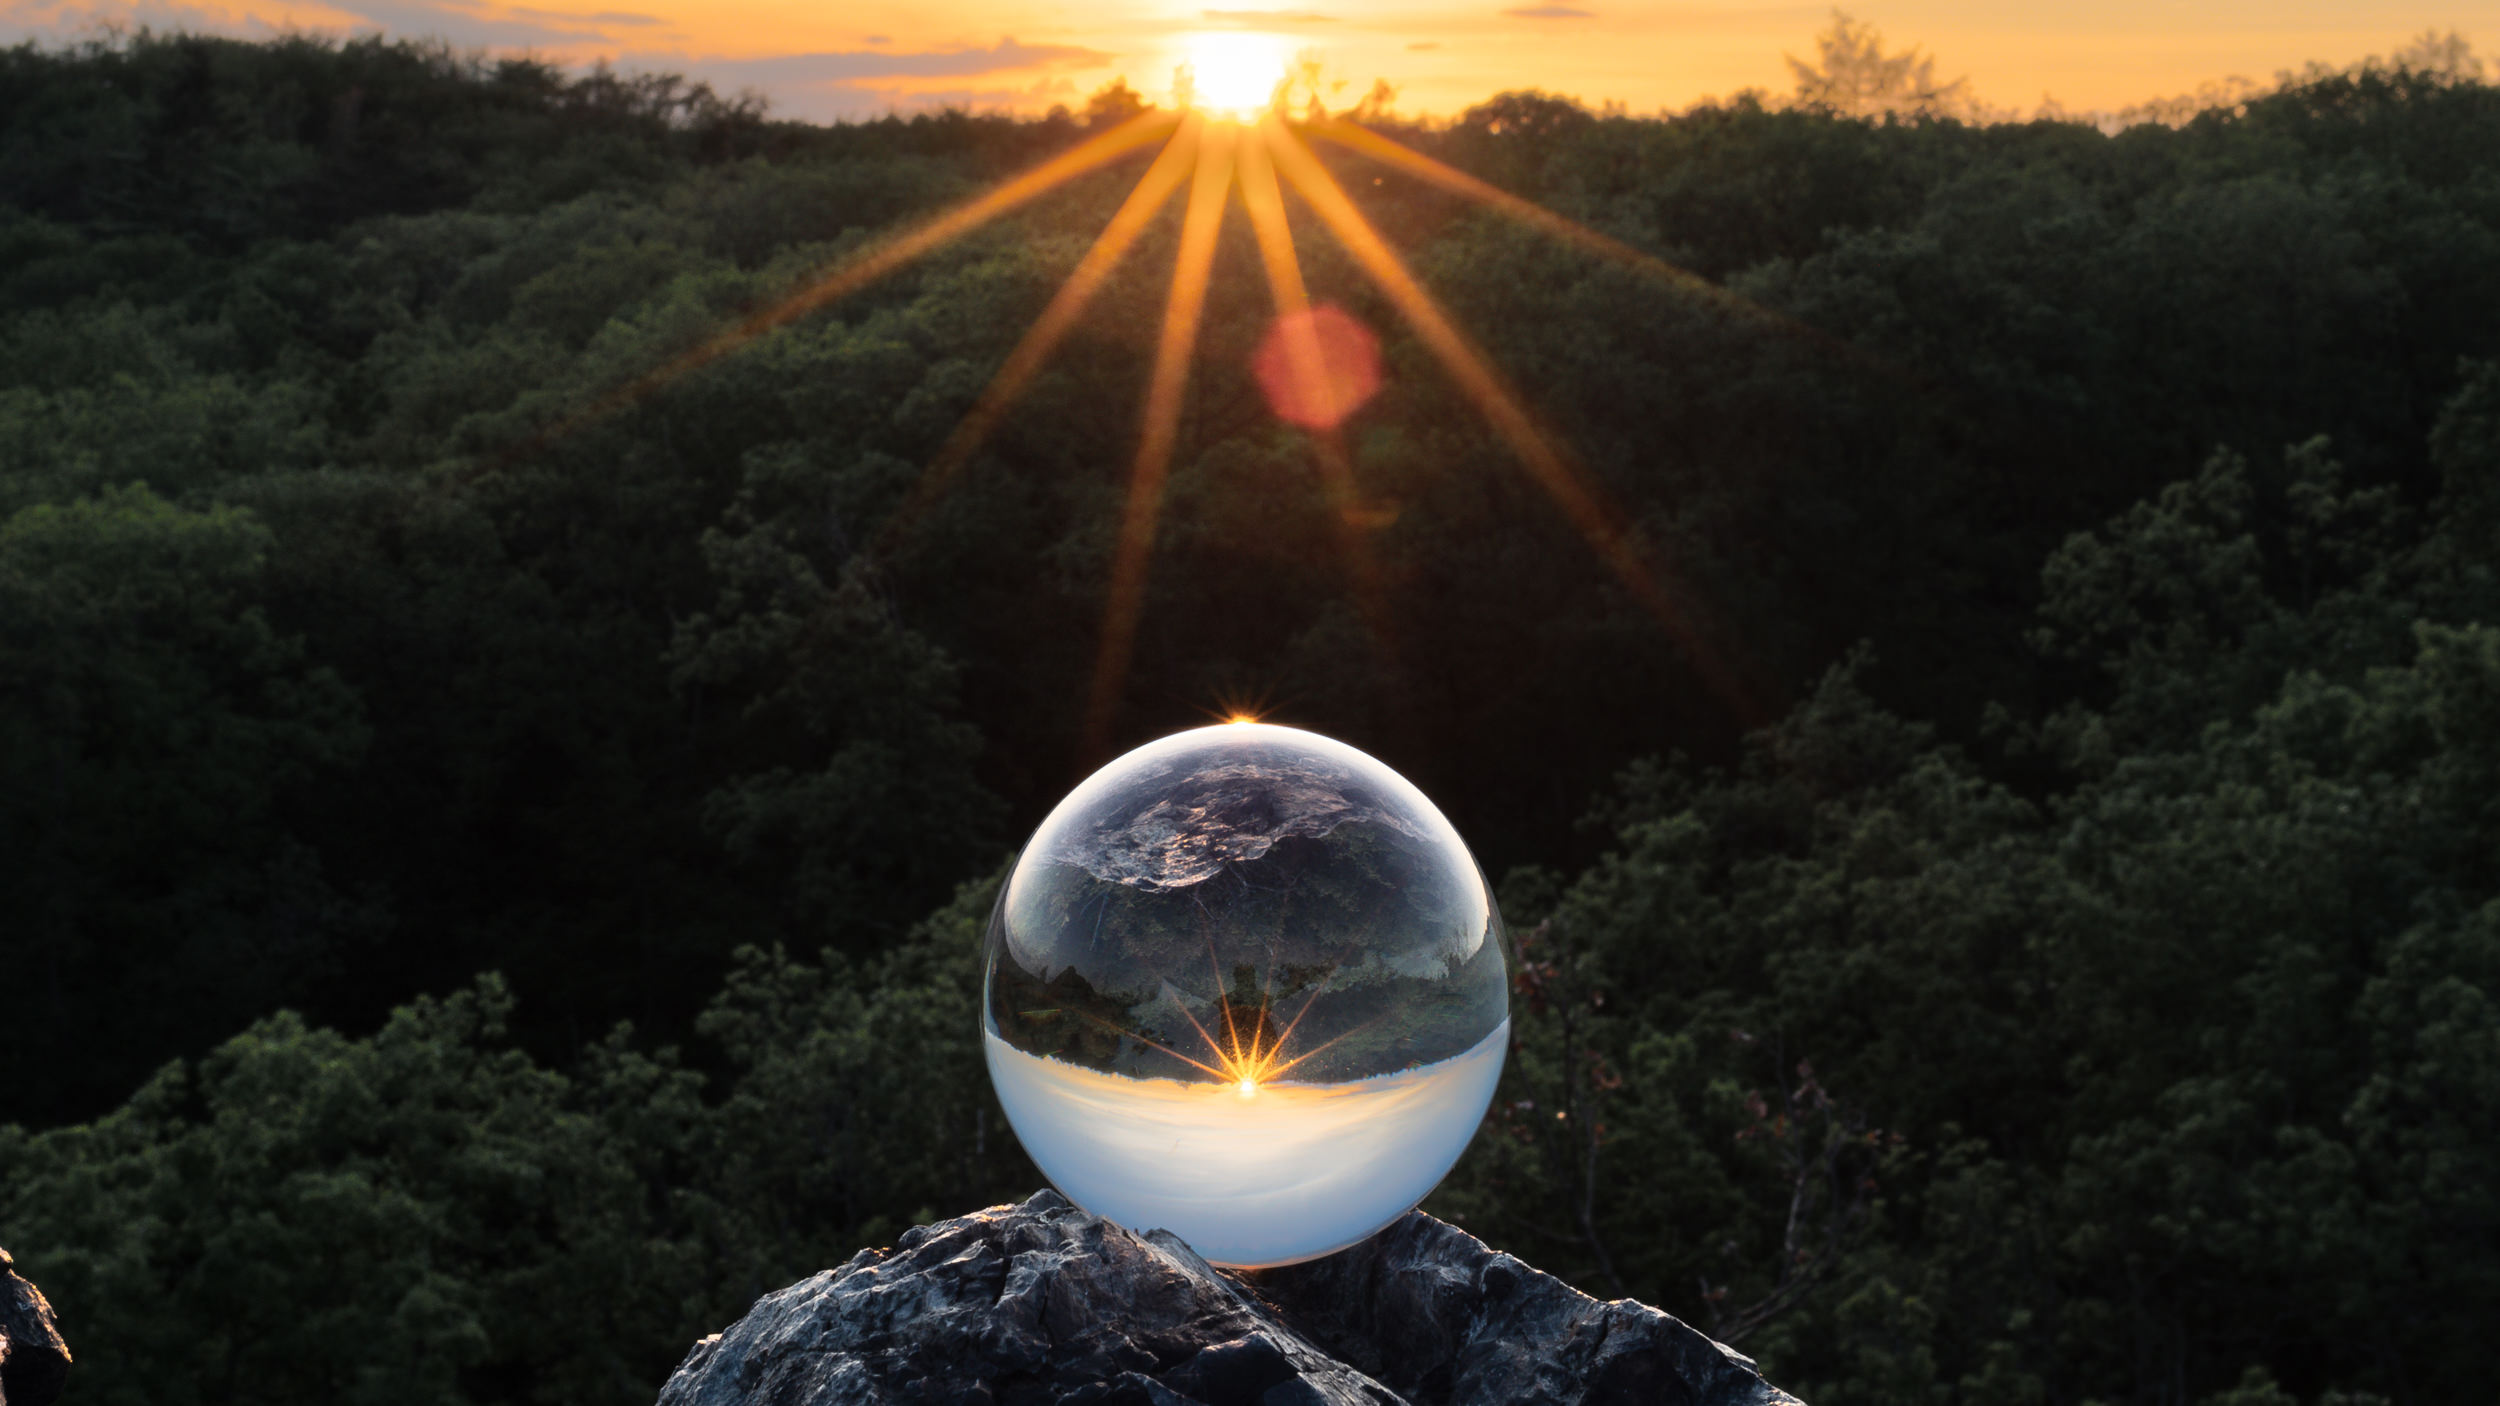 Crystal ball photography: 7 tips on how to shoot with a lens ball